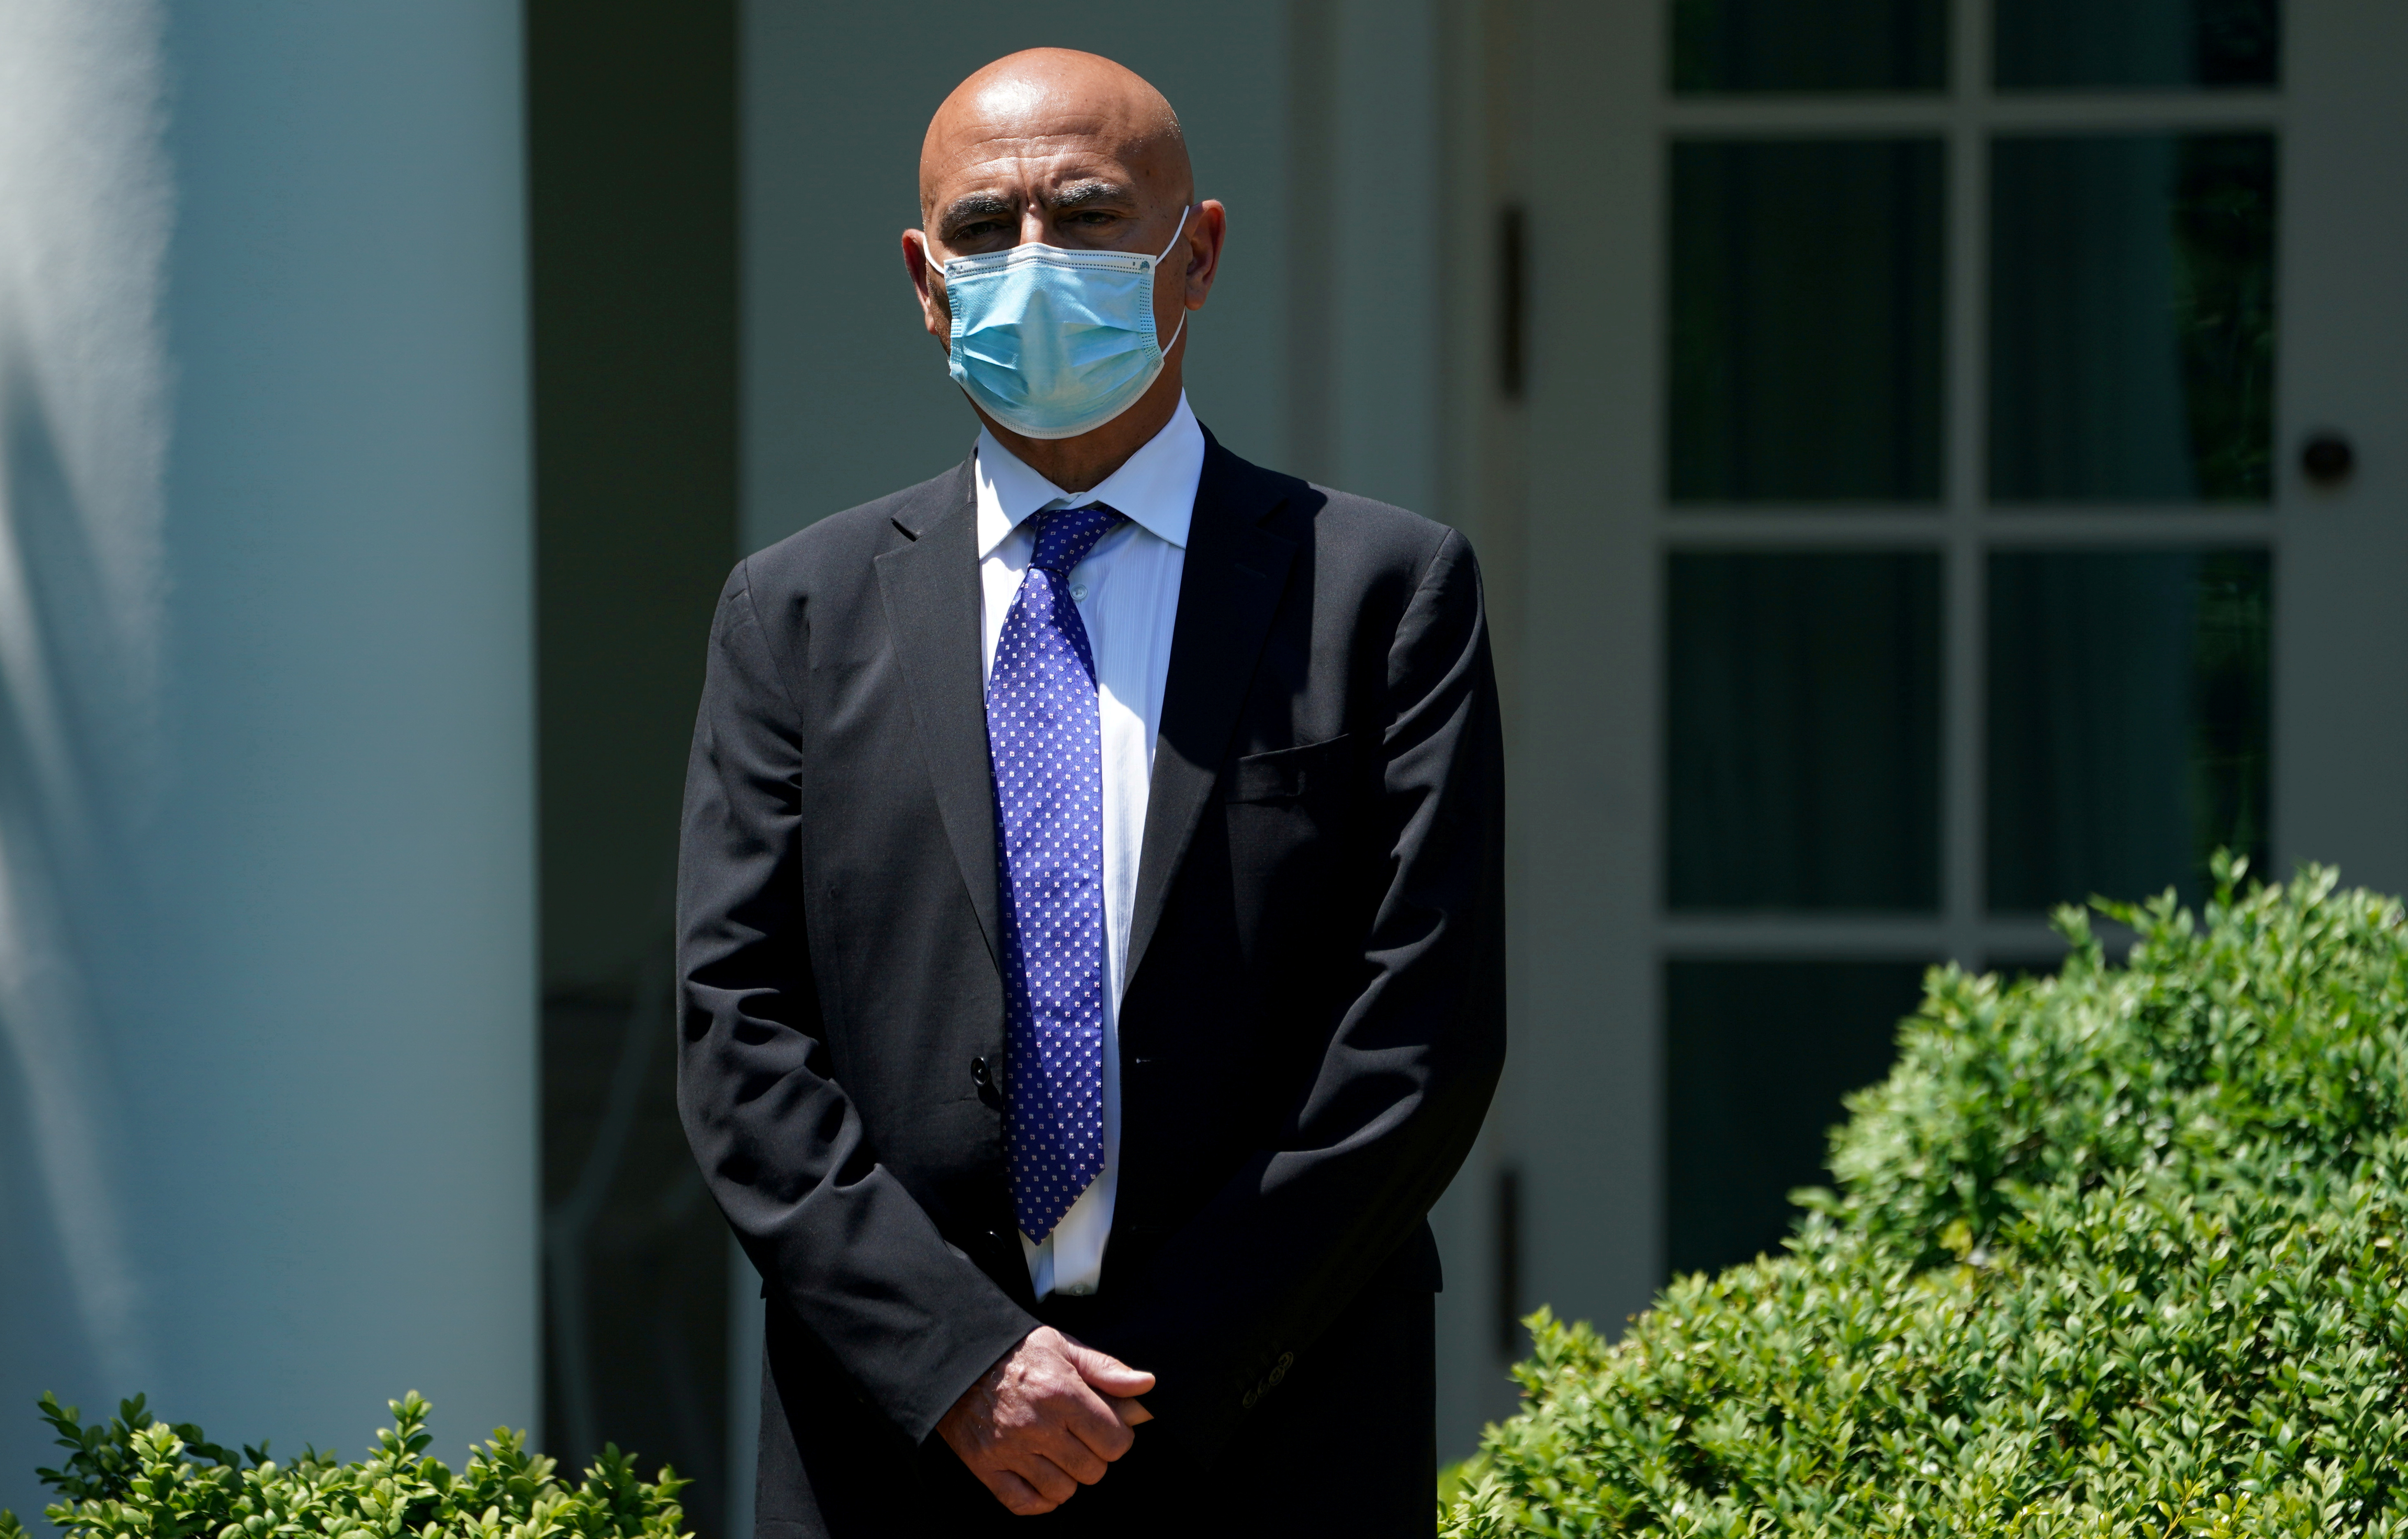 Former GlaxoSmithKline pharmaceutical executive Moncef Slaoui, who will serve as chief adviser on the effort to find a vaccine for the coronavirus disease (COVID-19) pandemic, waits to speak as President Donald Trump holds a coronavirus disease response event in the Rose Garden at the White House in Washington, U.S., May 15, 2020. REUTERS/Kevin Lamarque/File Photo